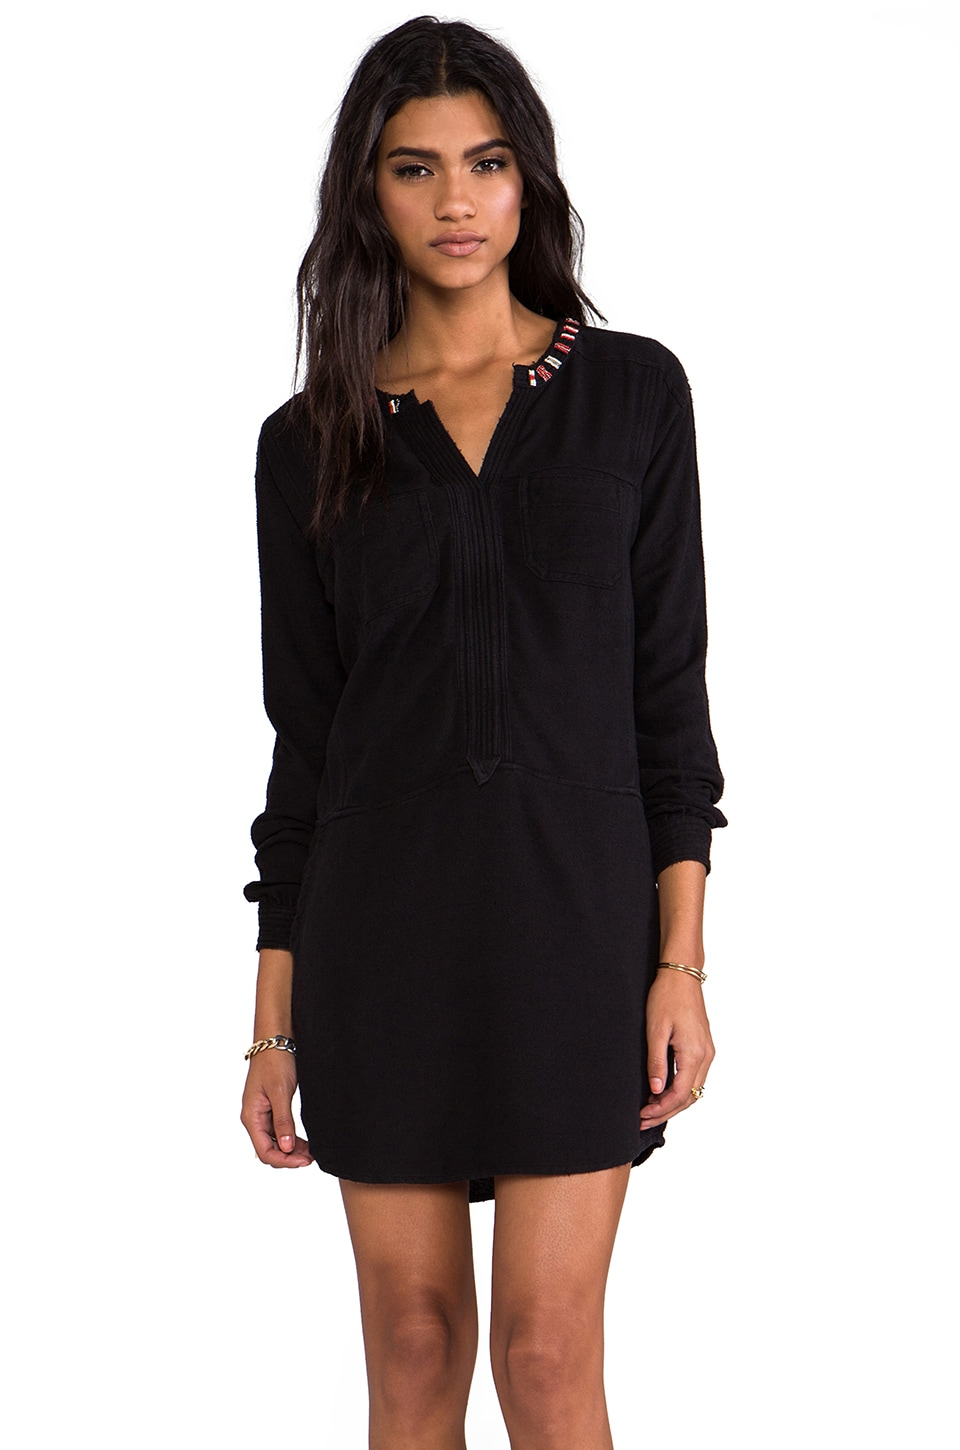 Maison Scotch Long Sleeve Mini Dress with Embellished Collar in Black